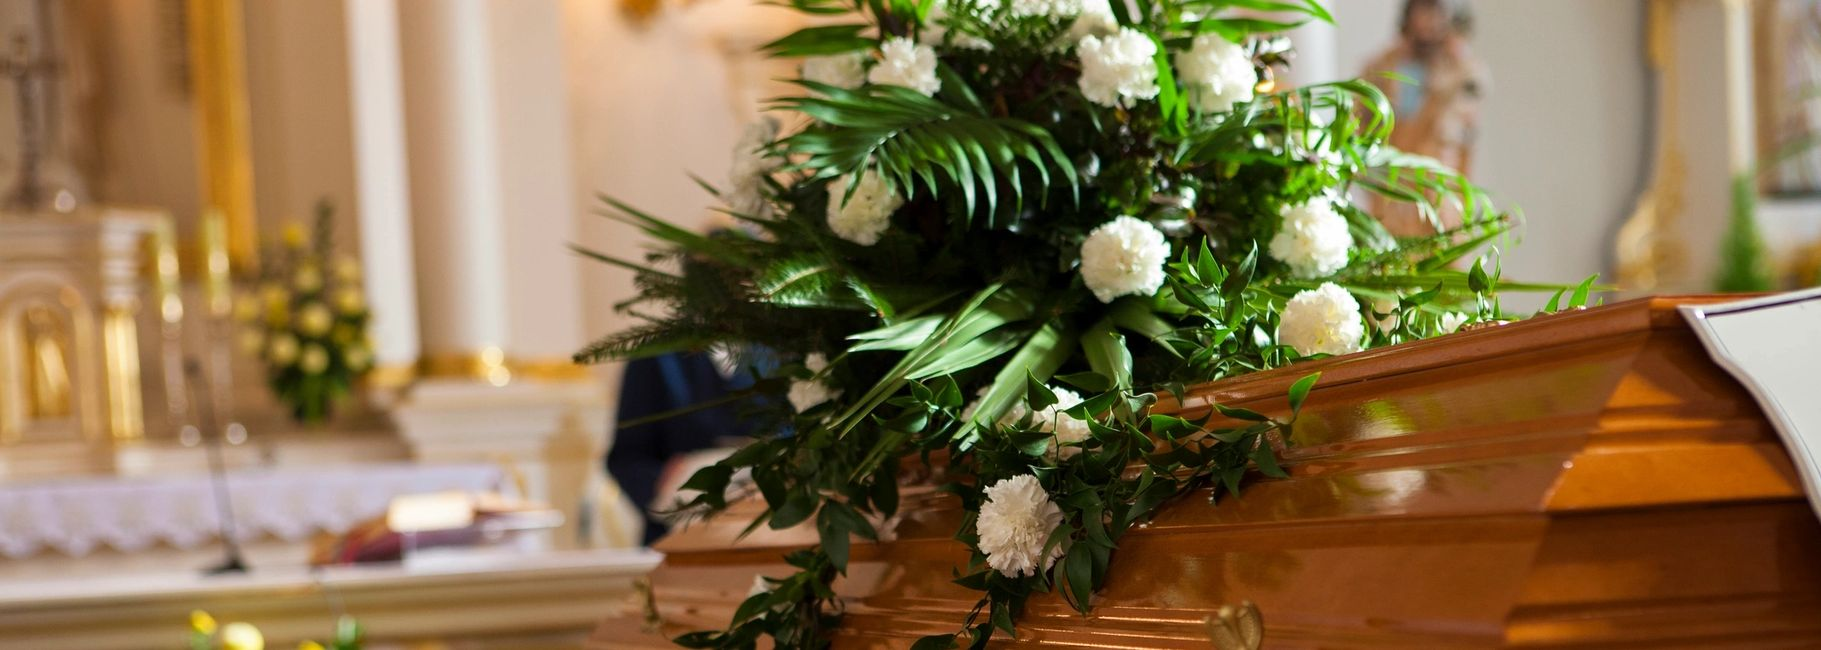 cremation | funeral | celebration of life | memorial service for funeral